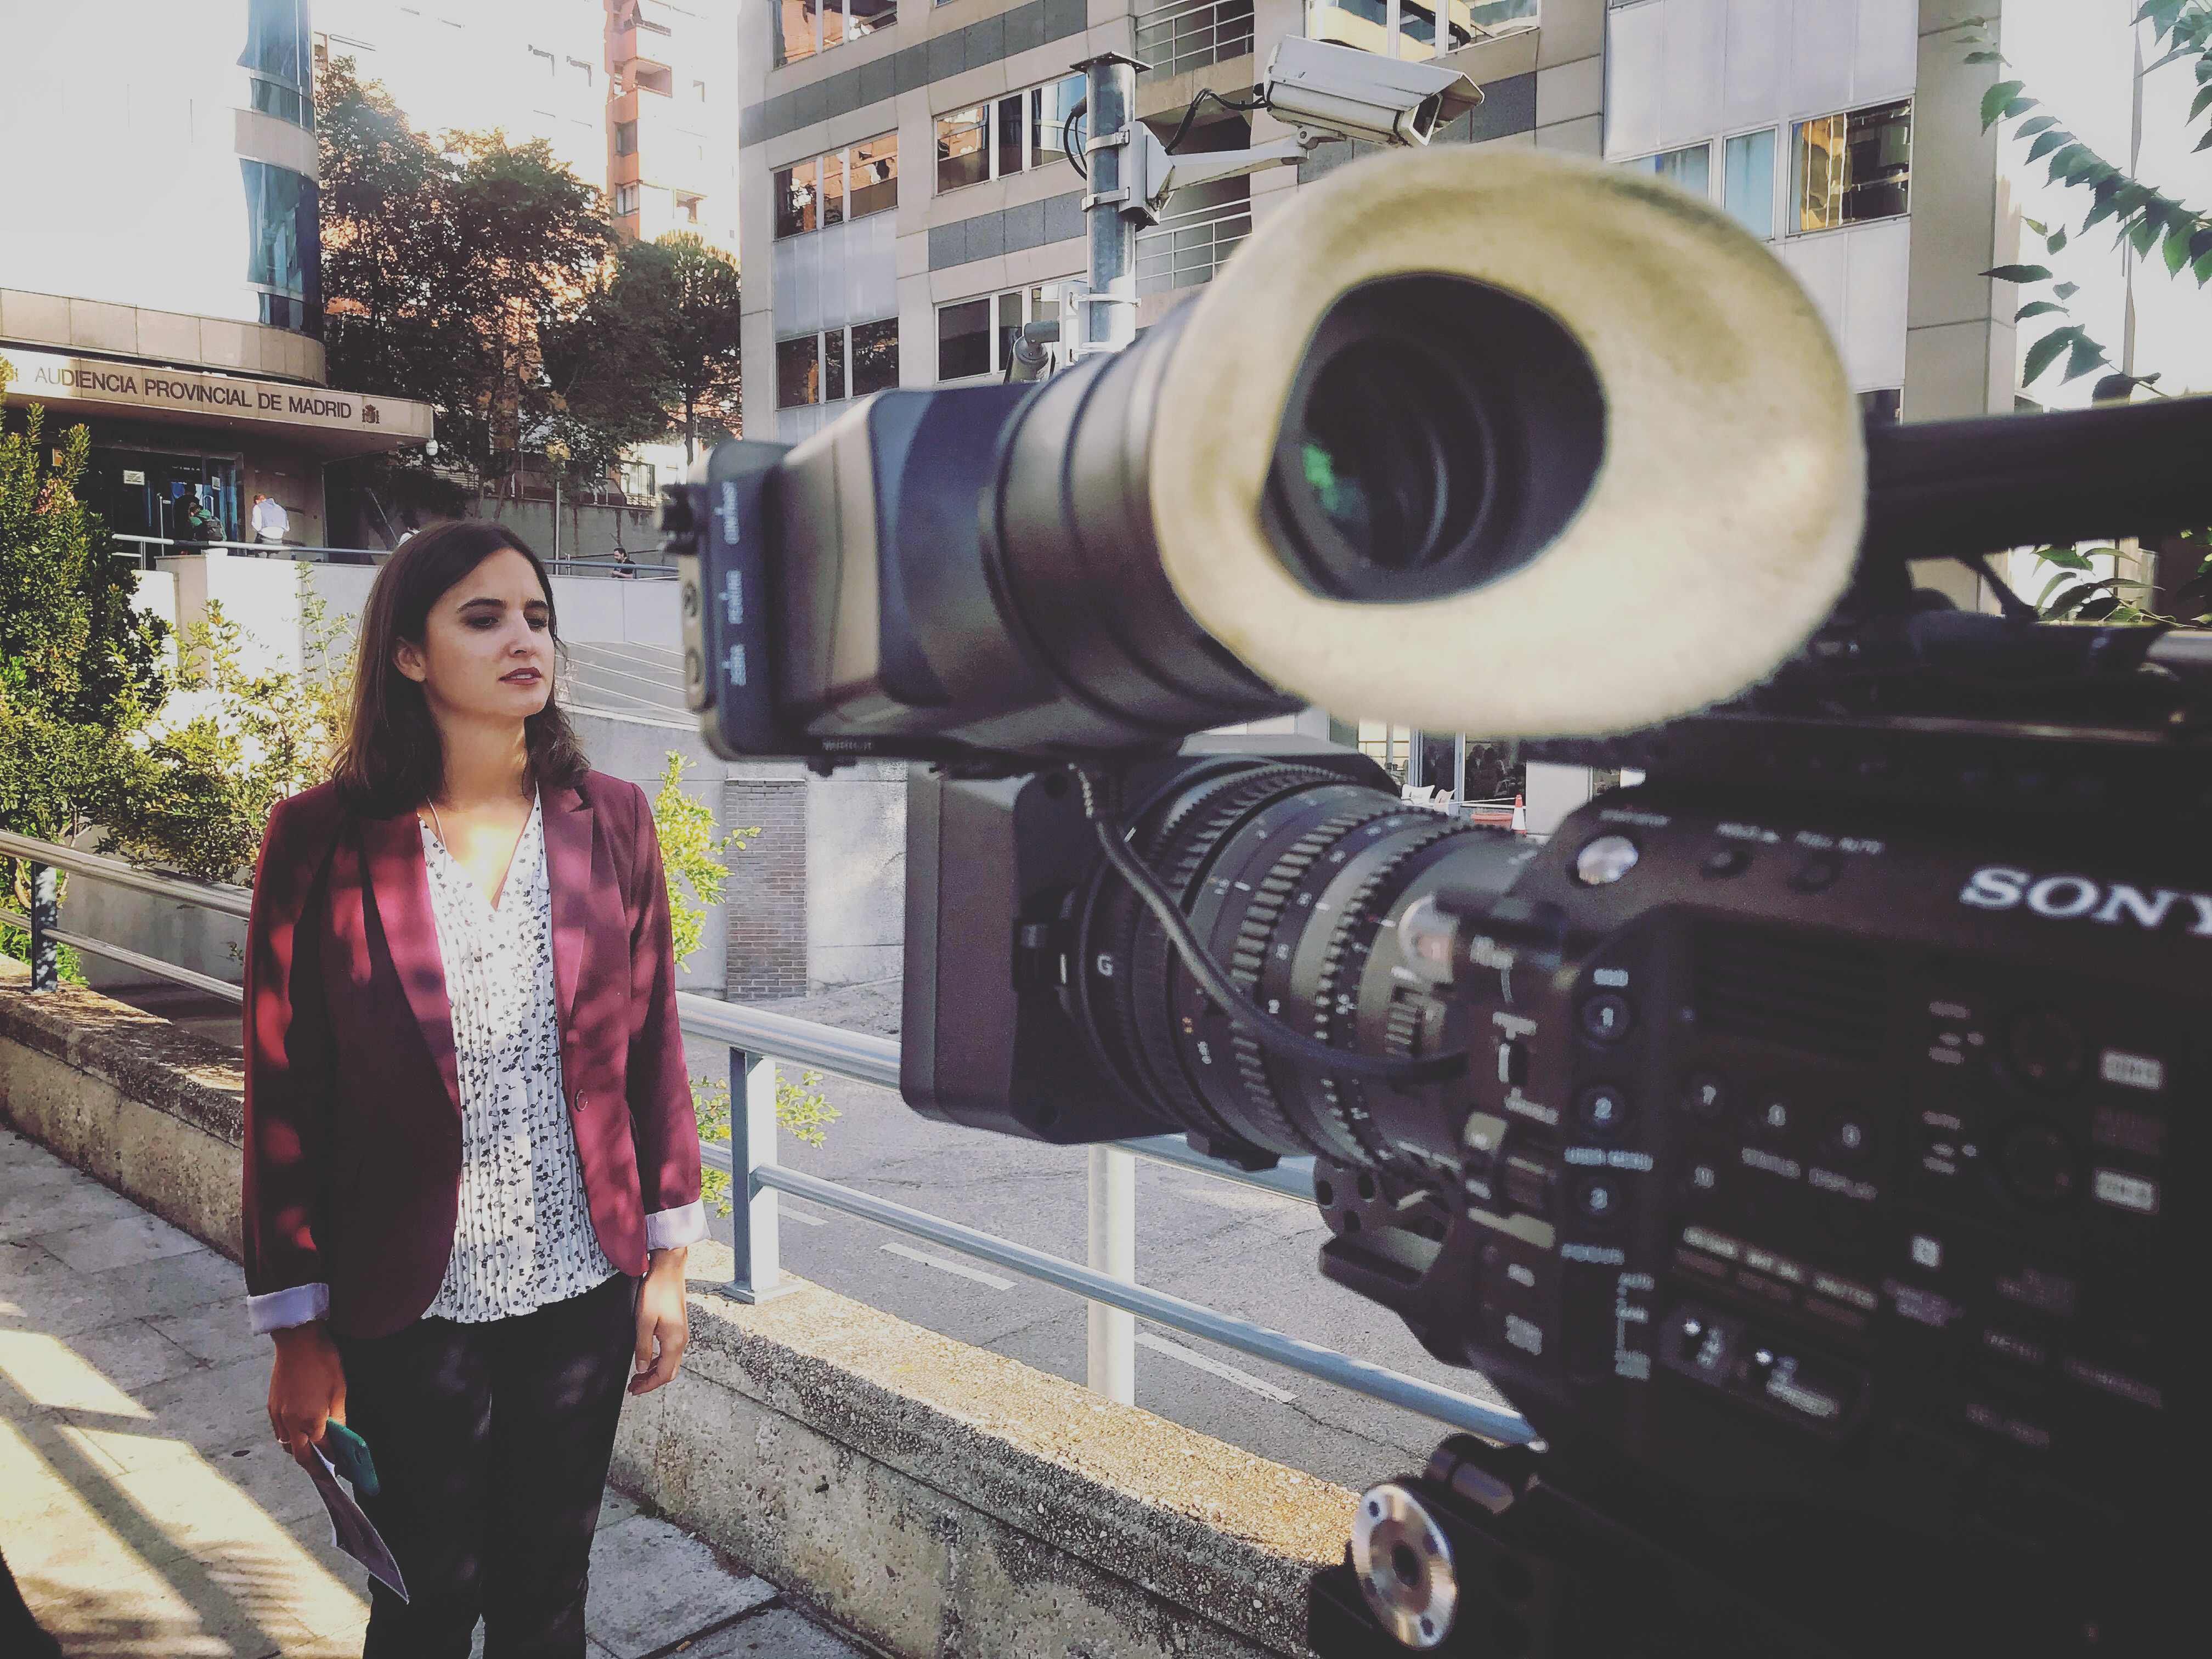 TVE NEWS COVERAGE WITH PORTABLE TRANSMITION